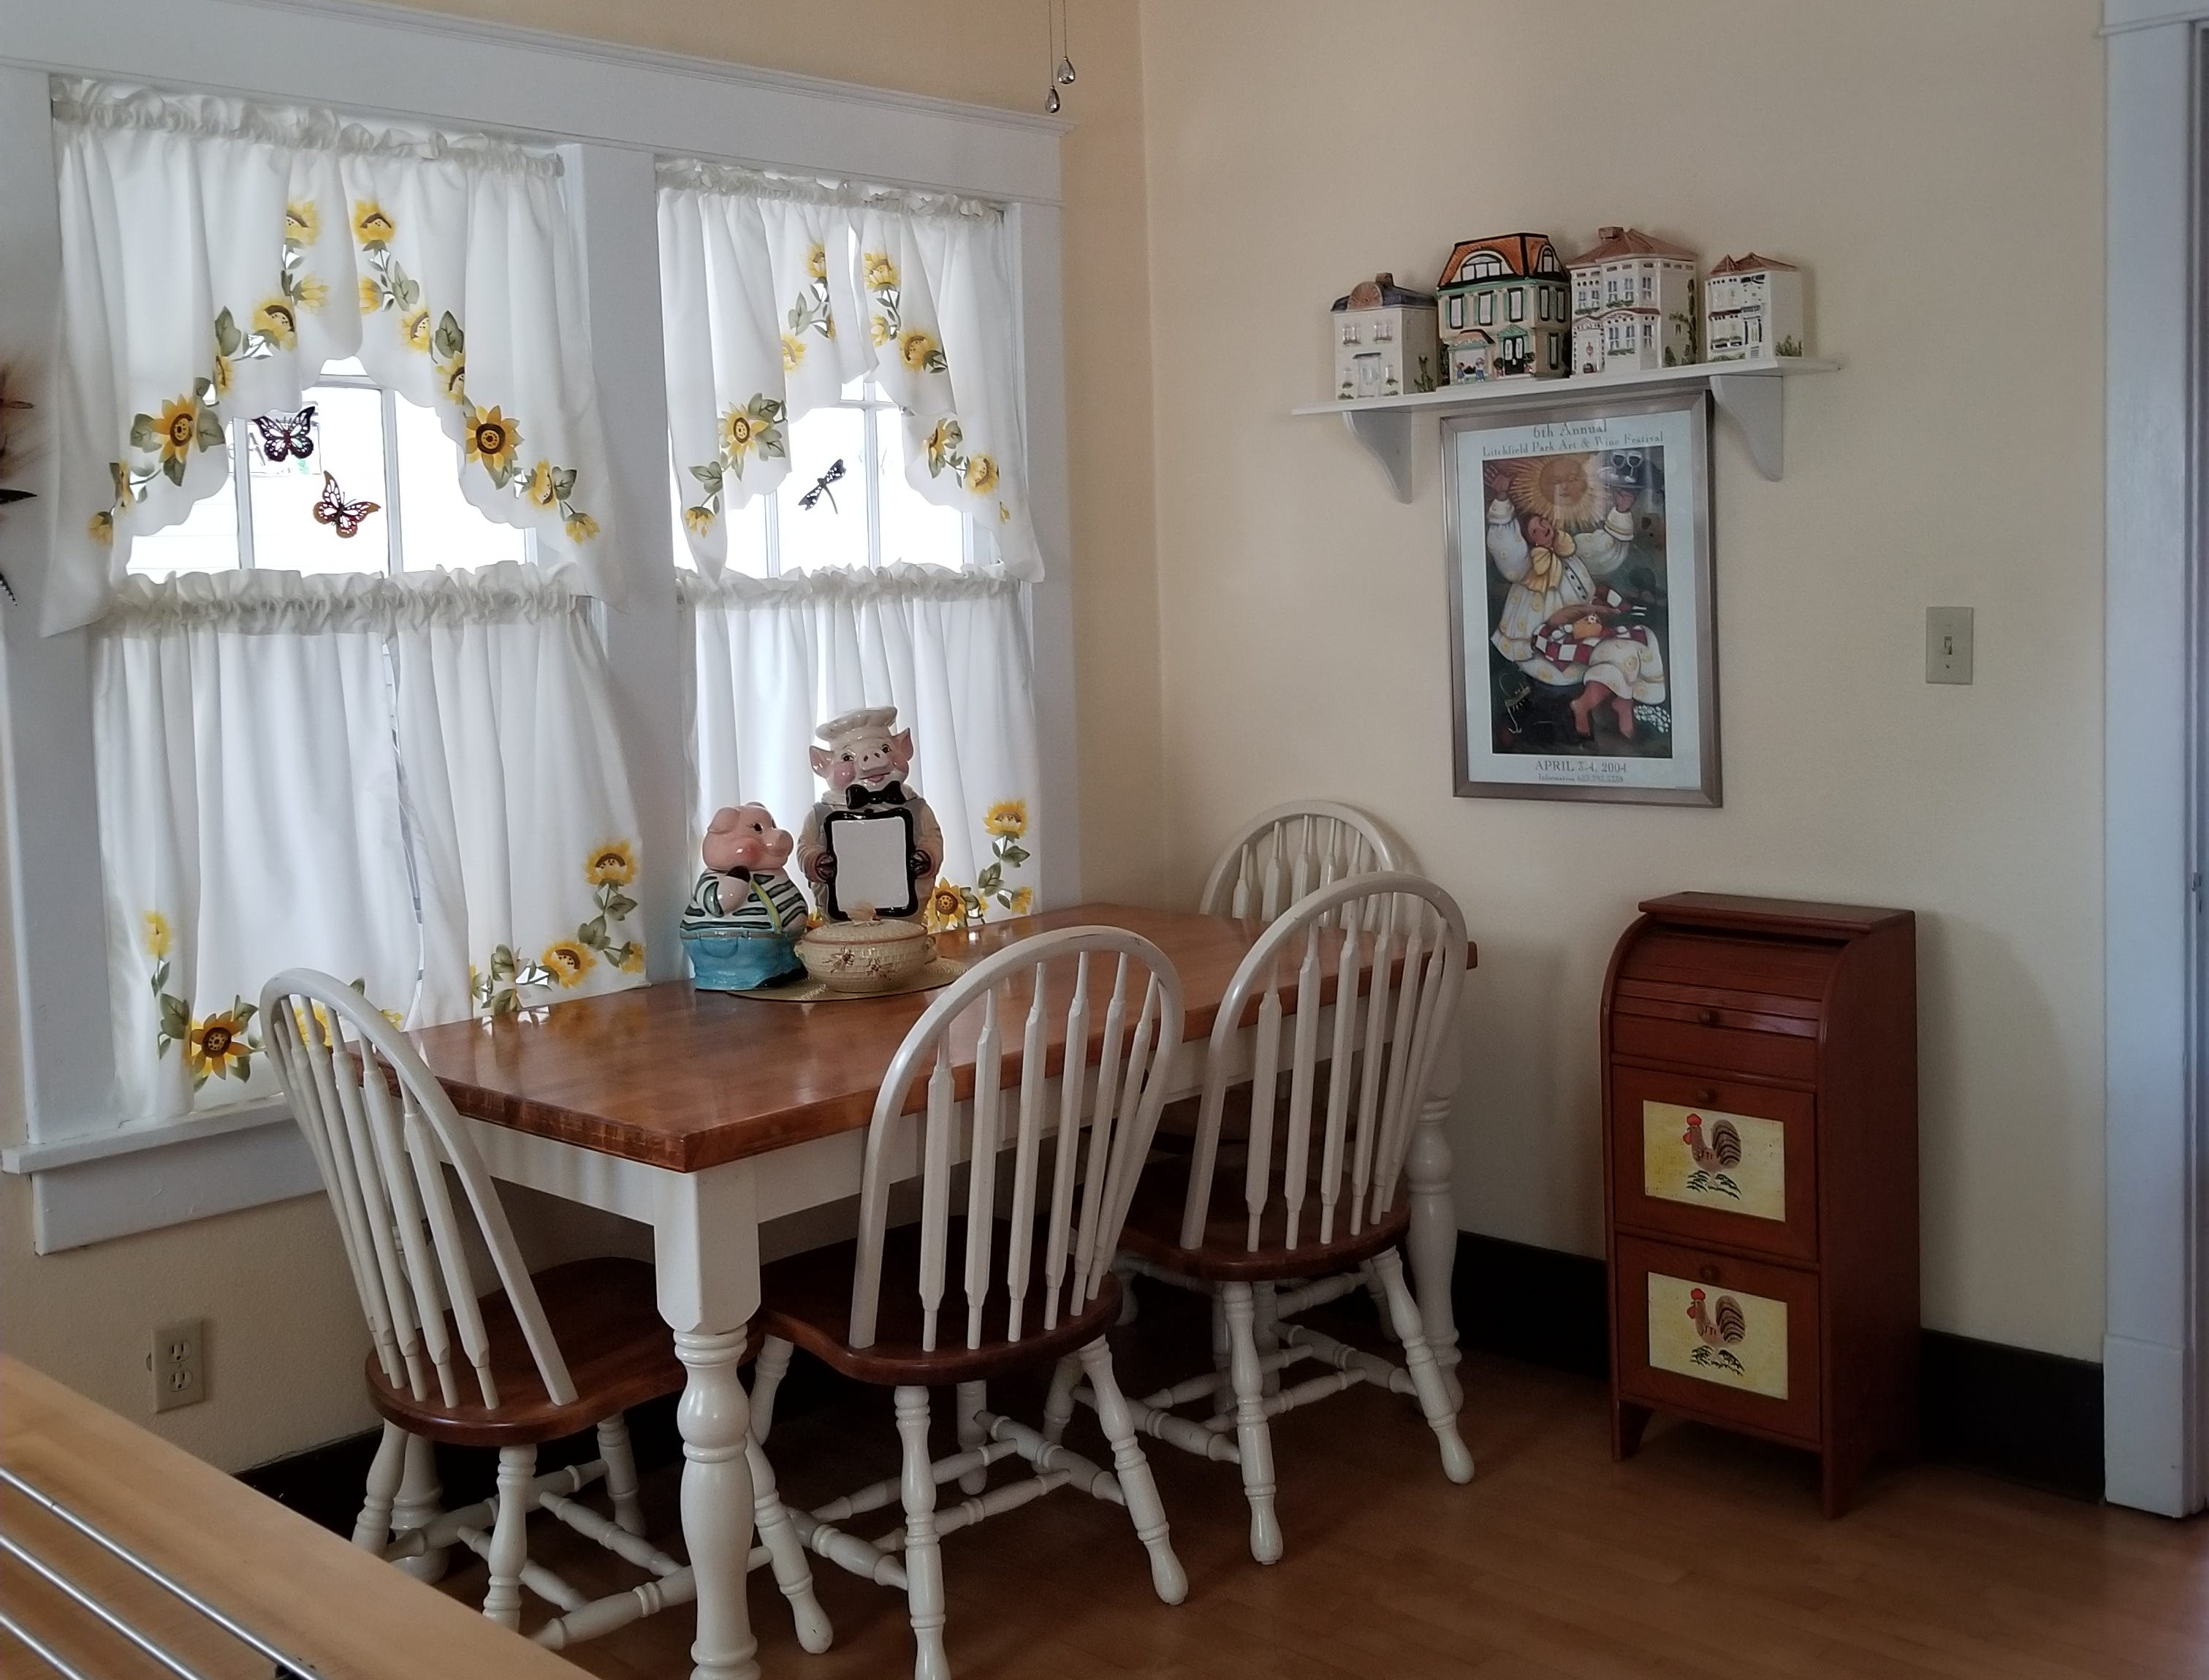 The kitchen has ample room for a full-sized table with windows overlooking the breezeway.